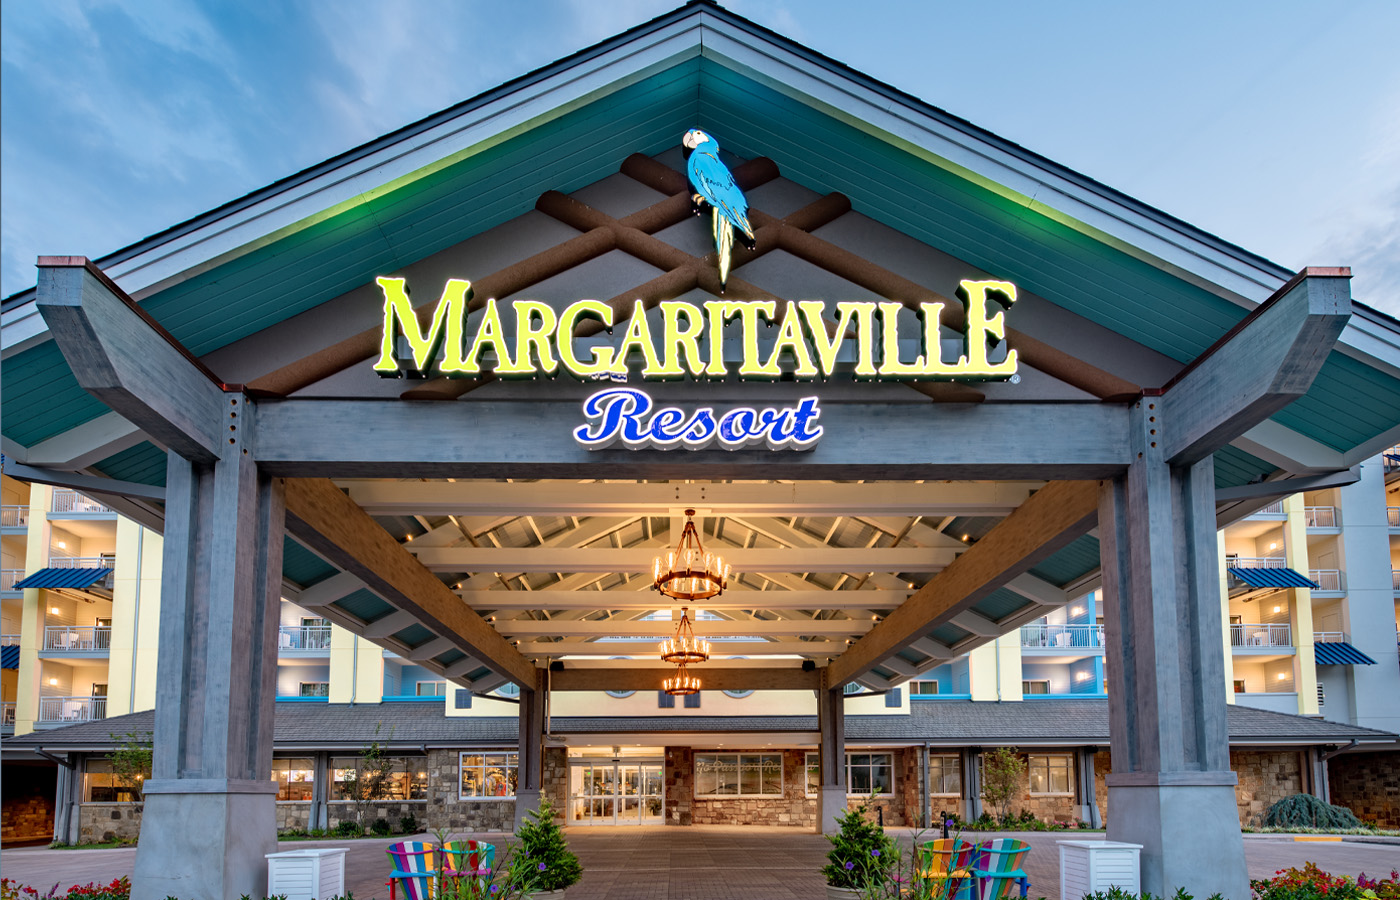 Margaritaville Resort Gatlinburg